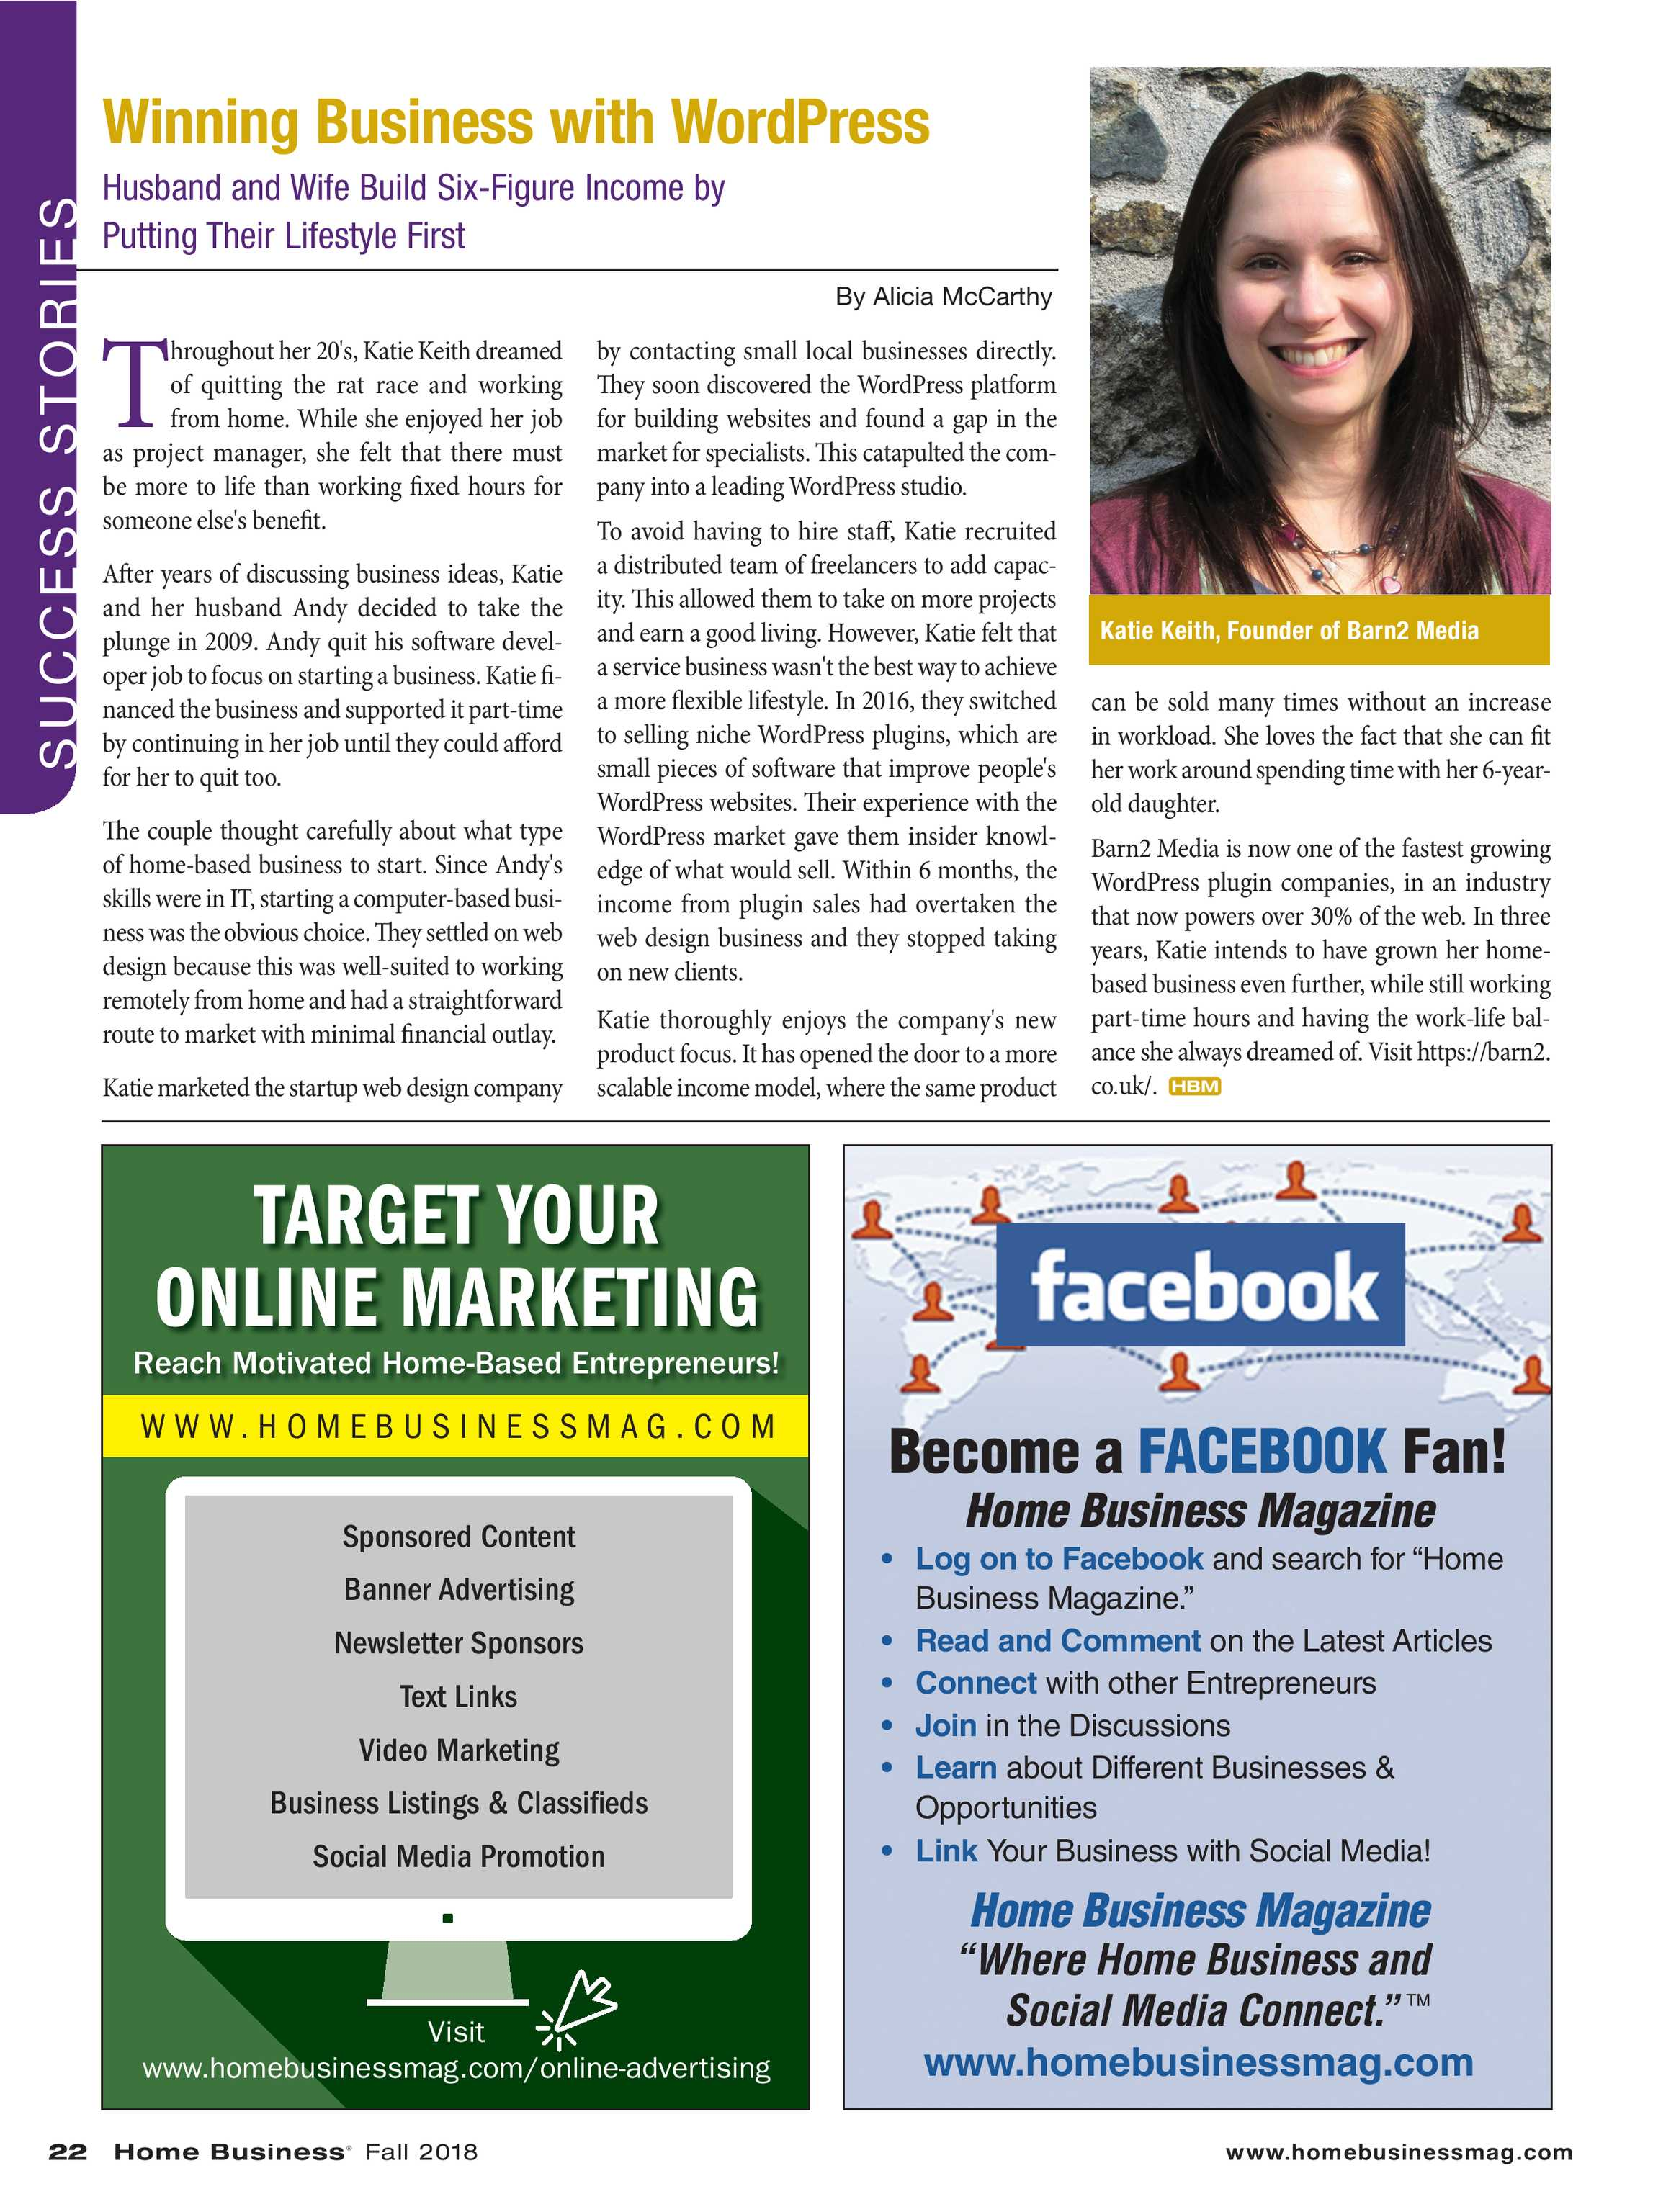 Home Business Magazine - Fall 2018 - page 22